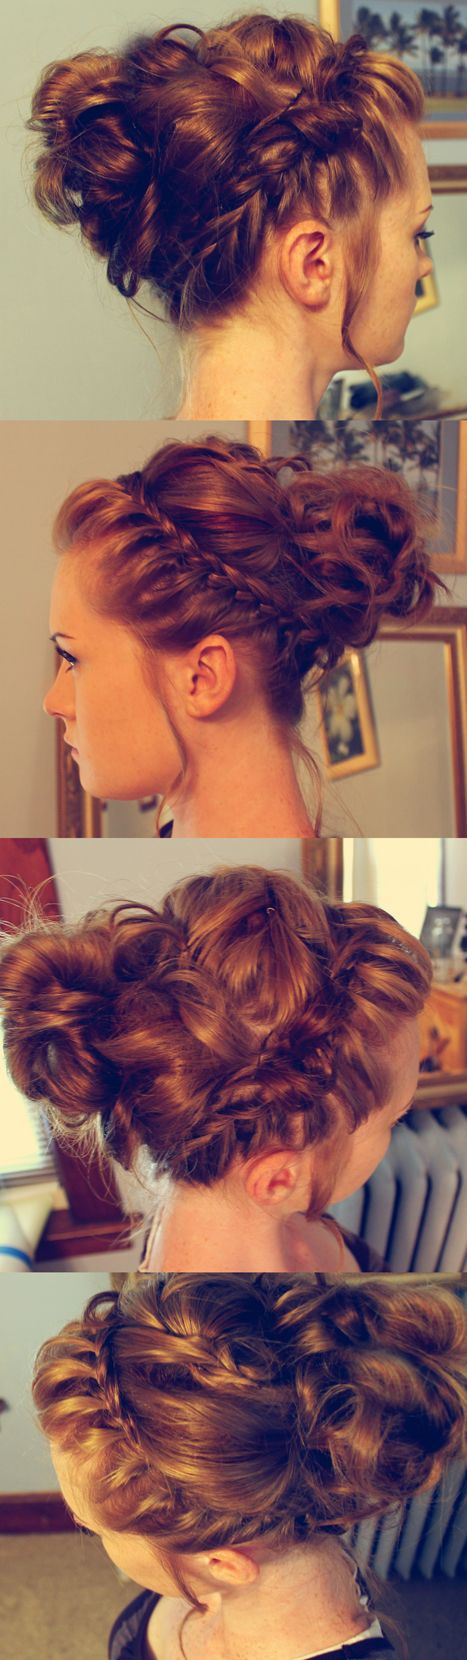 Messy braided updo without bangs